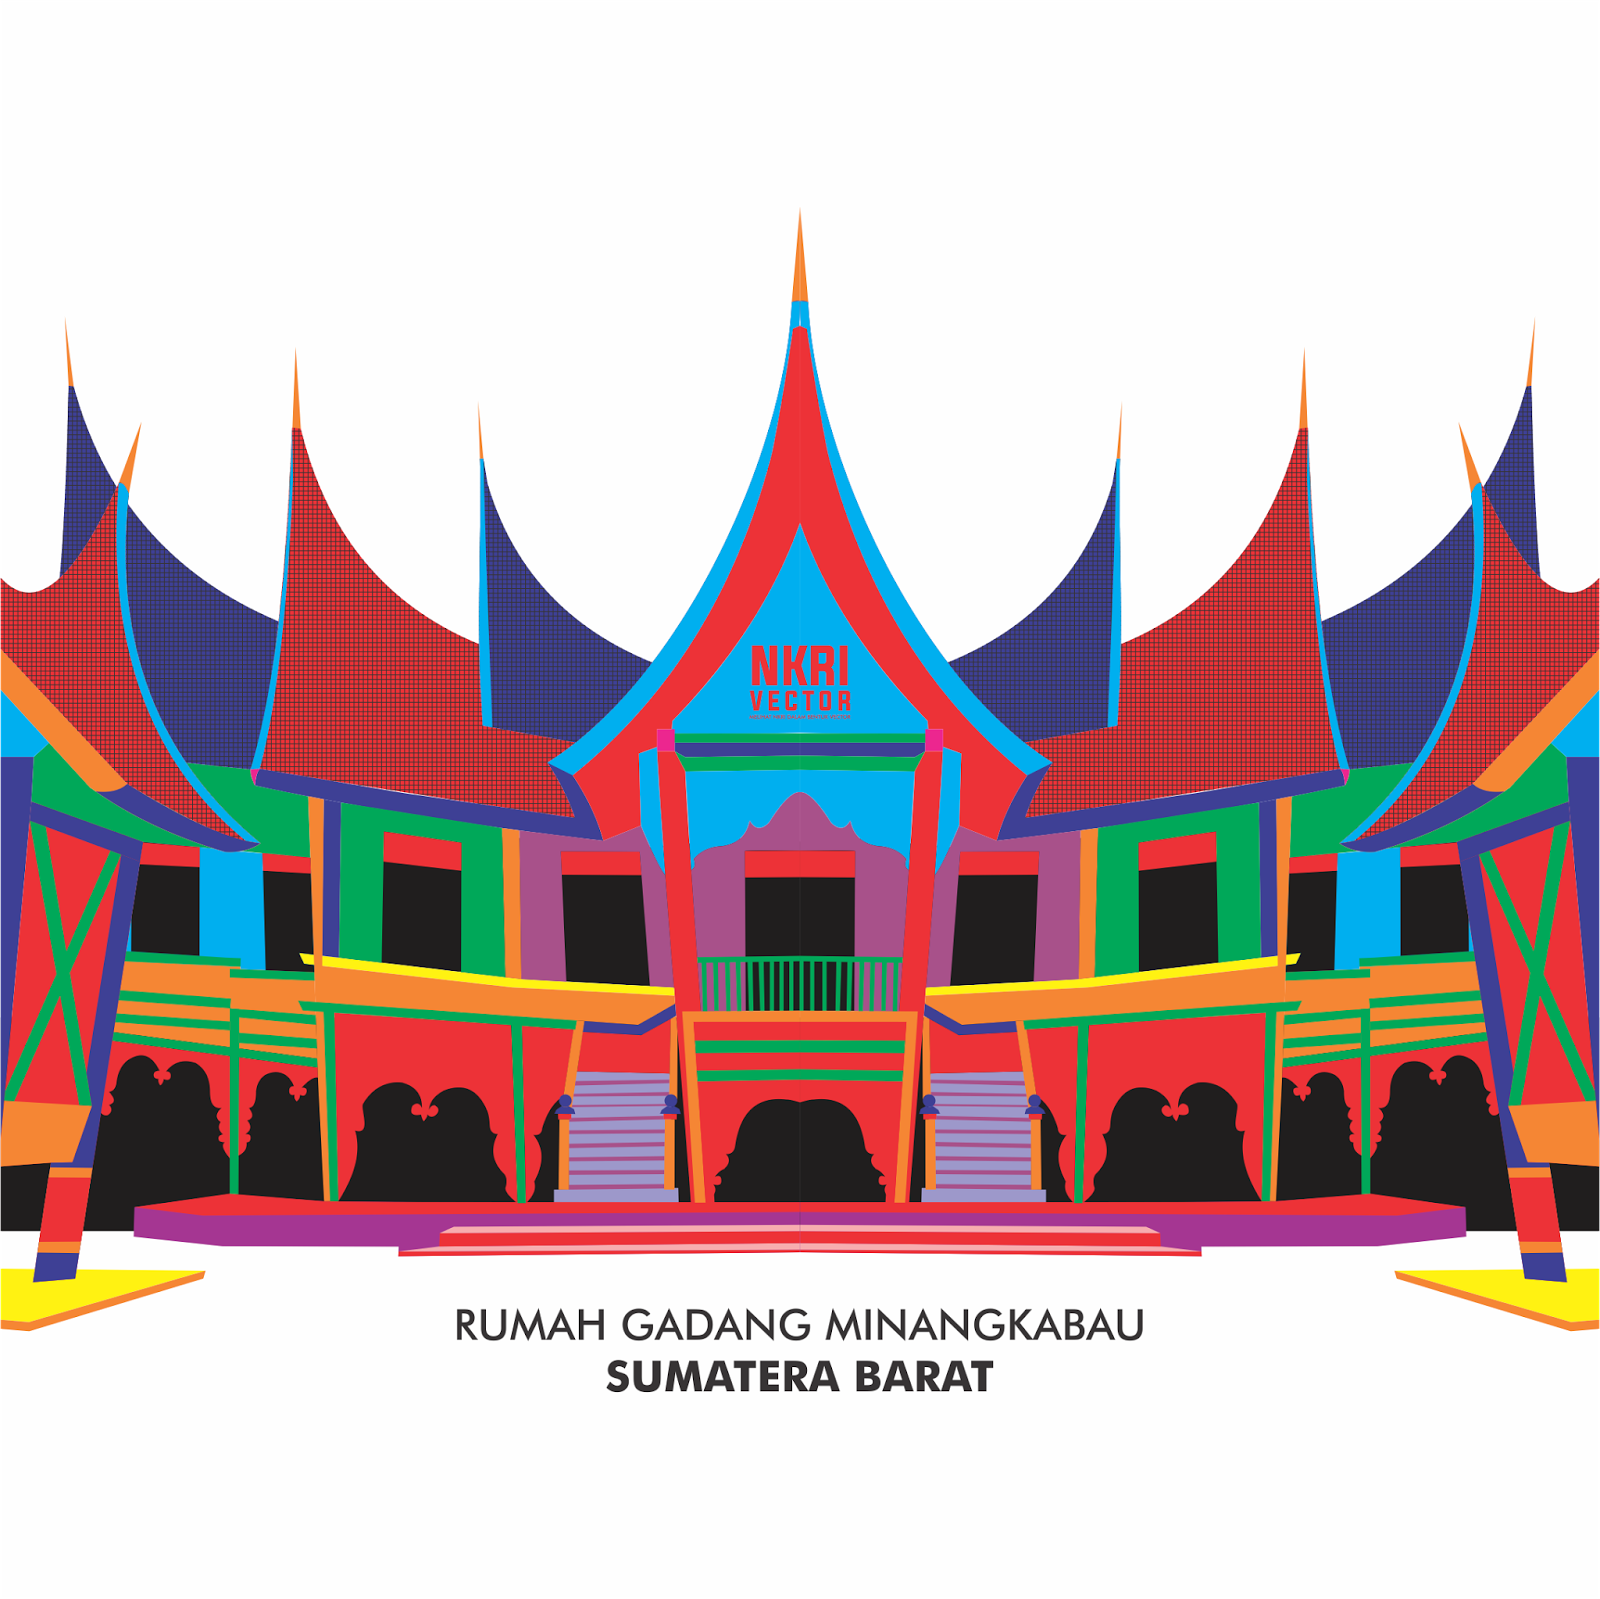 rumah gadang vector png png image 1769172 png images pngio pngio com